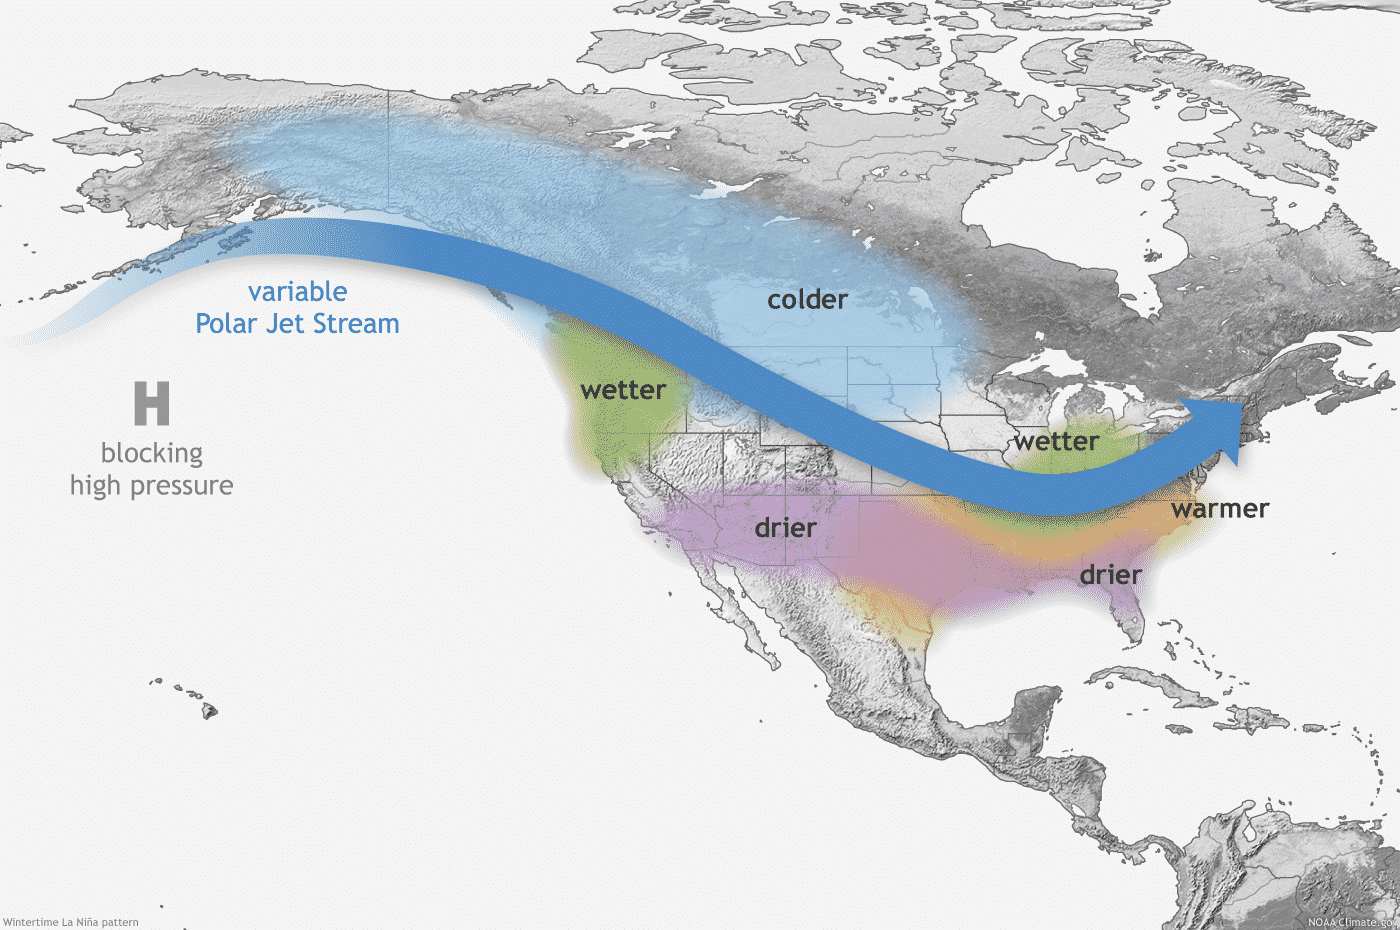 spring-2021-long-range-weather-forecast-united-states-europe-cold-enso-north-america-winter